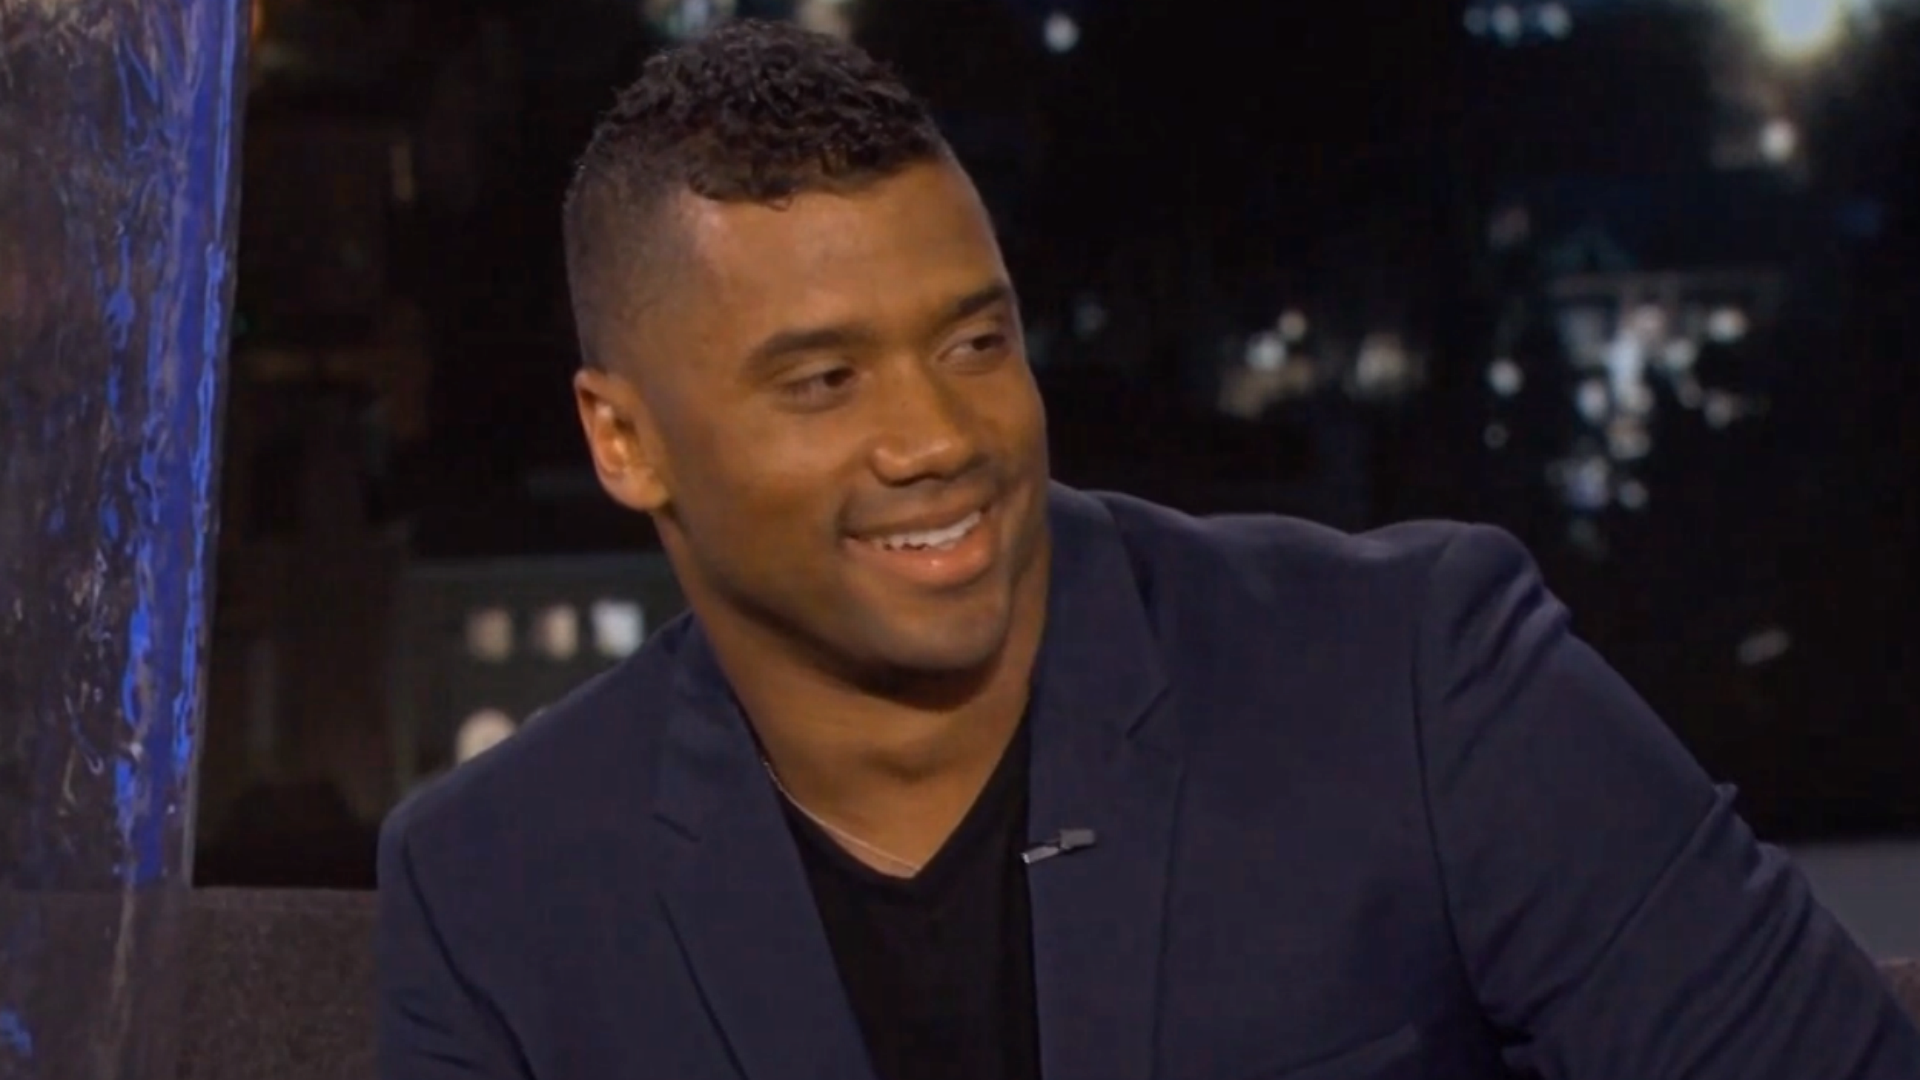 Russell Wilson uses dirty joke on Jimmy Kimmel Live!